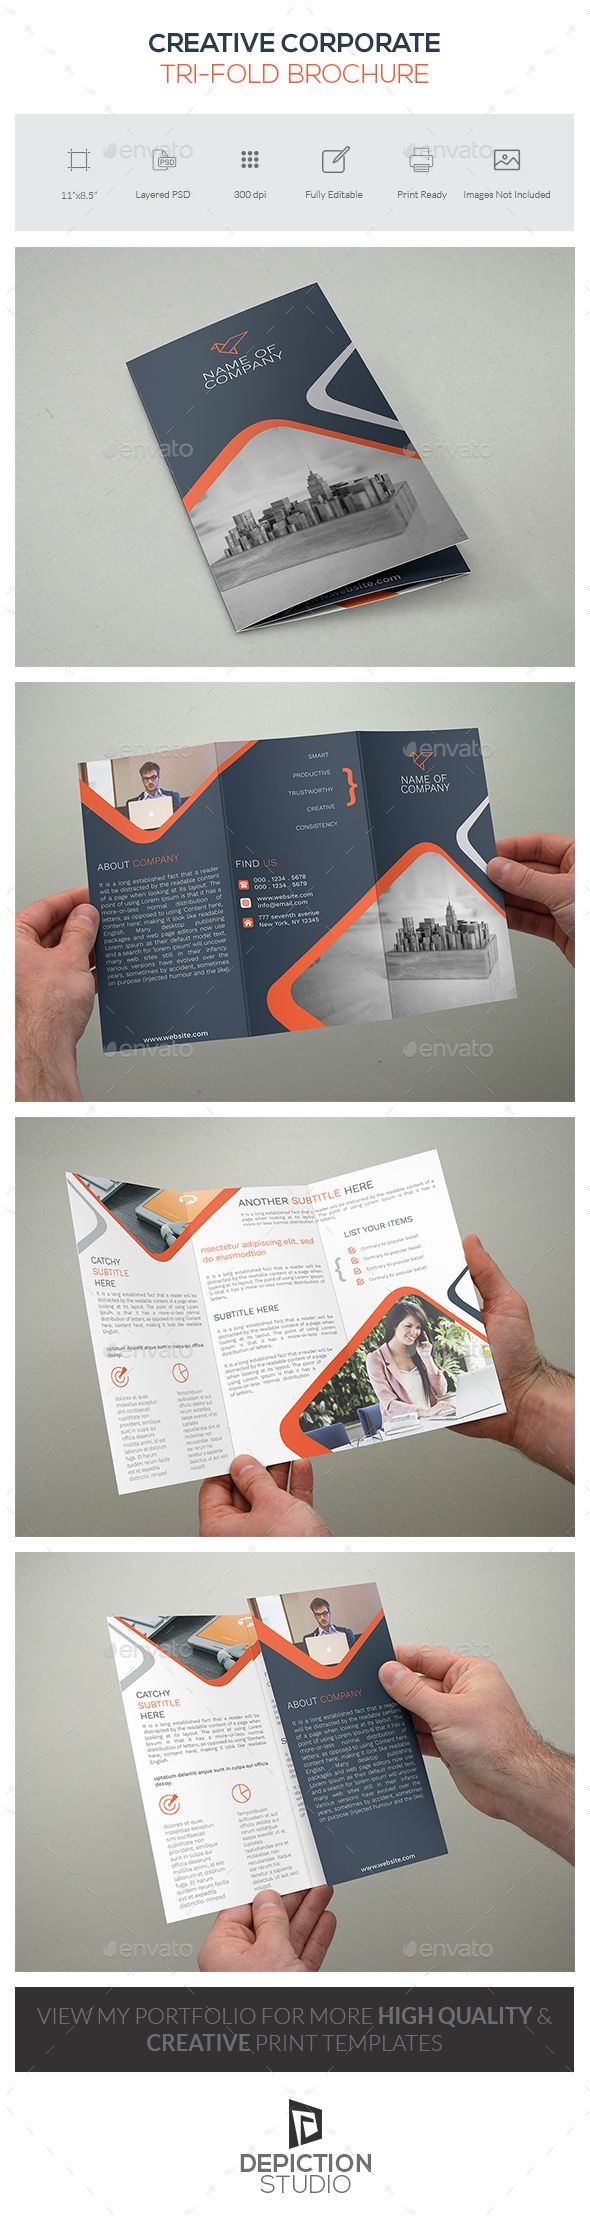 Creative Corporate Tri-Fold Brochure Template PSD #design Download: http://graphicriver.net/item/creative-corporate-trifold-brochure/14397211?ref=ksioks